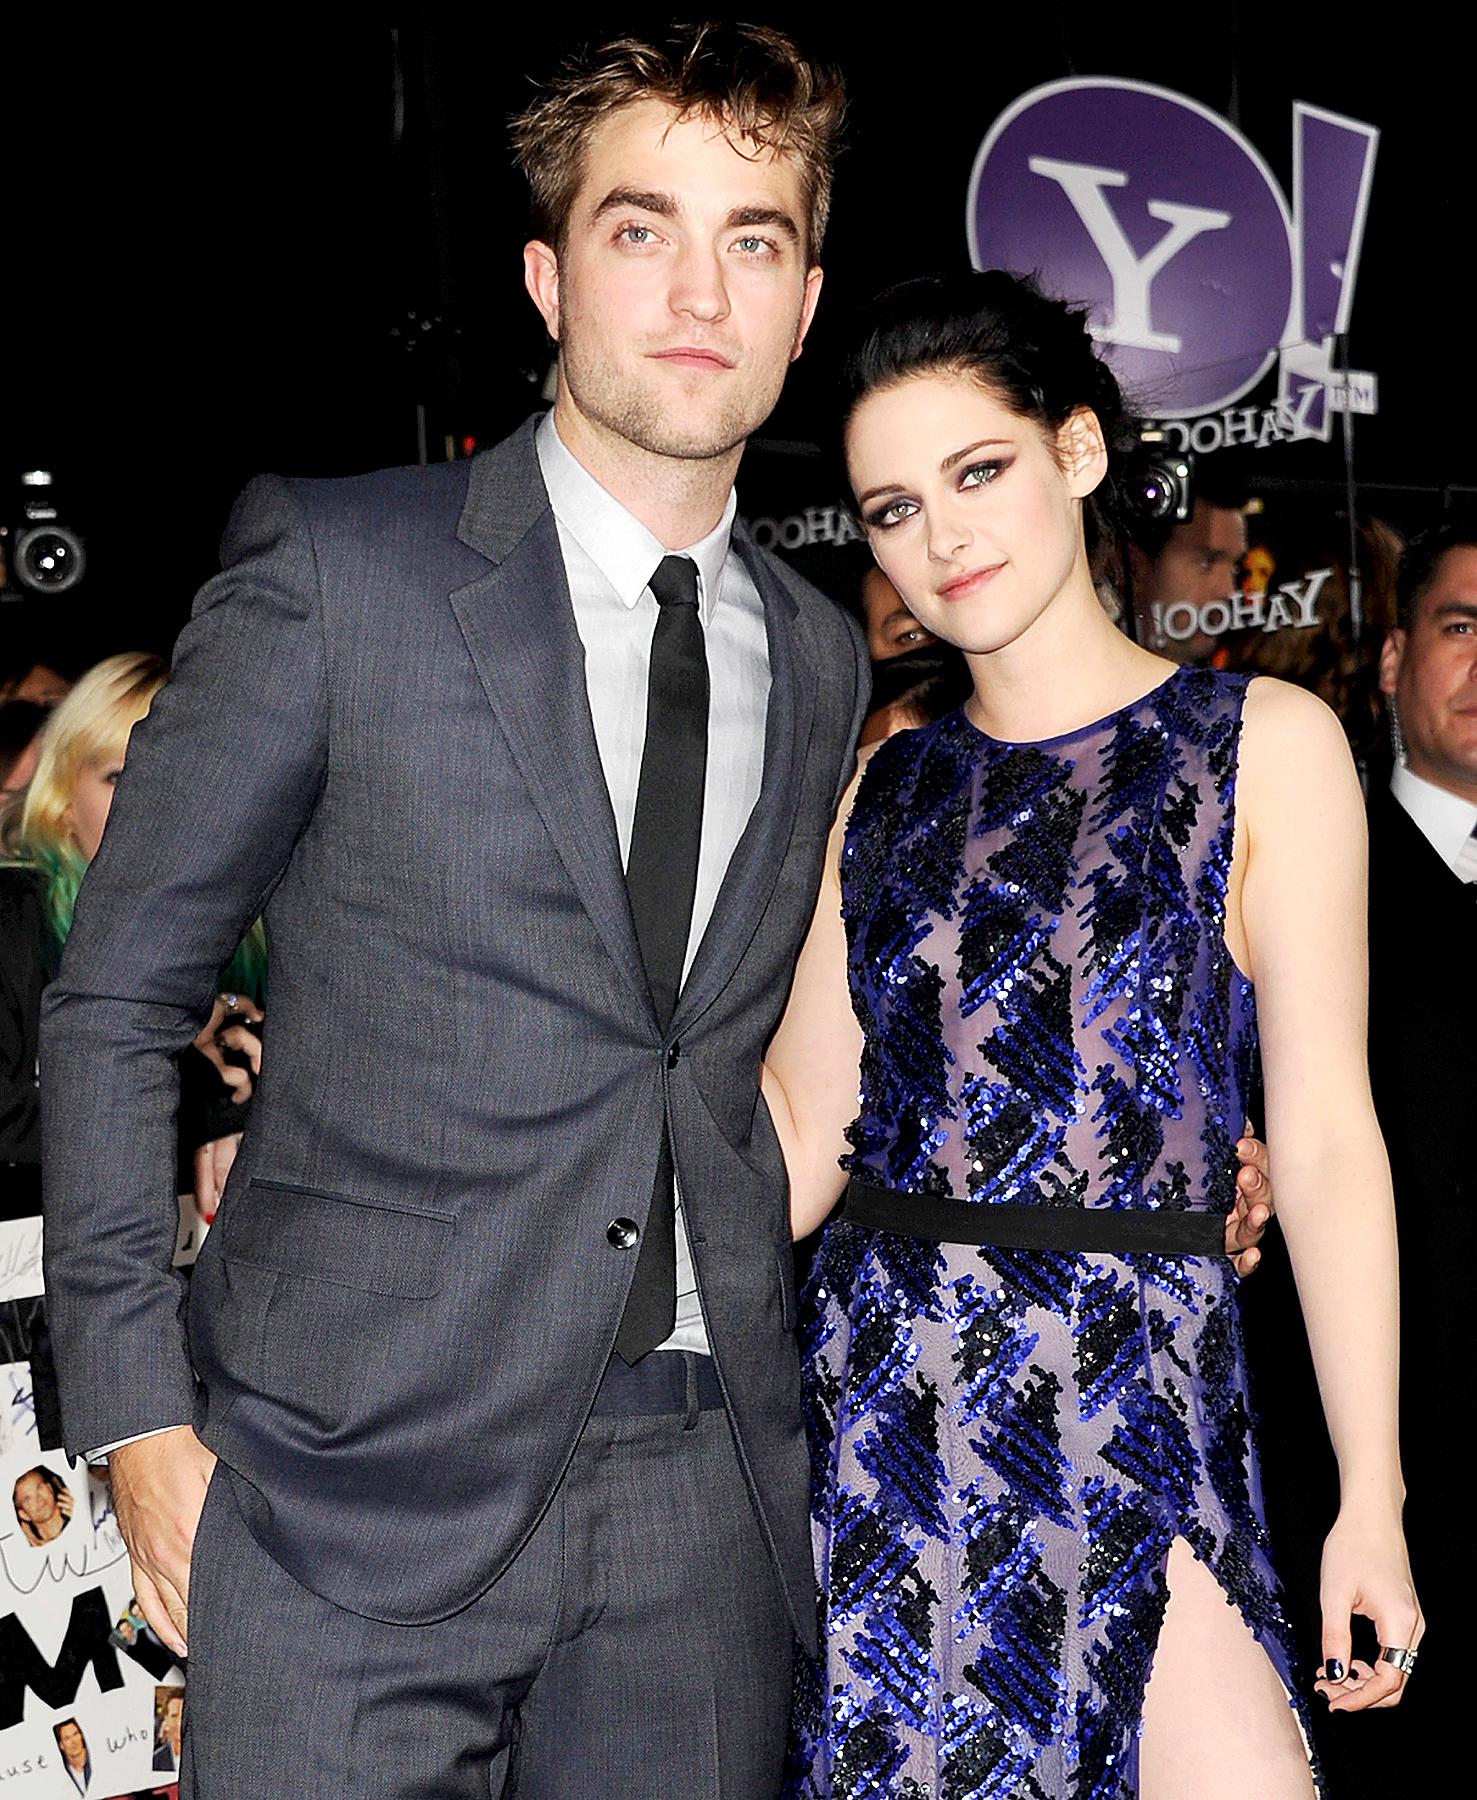 Who was robert pattinson hookup before kristen